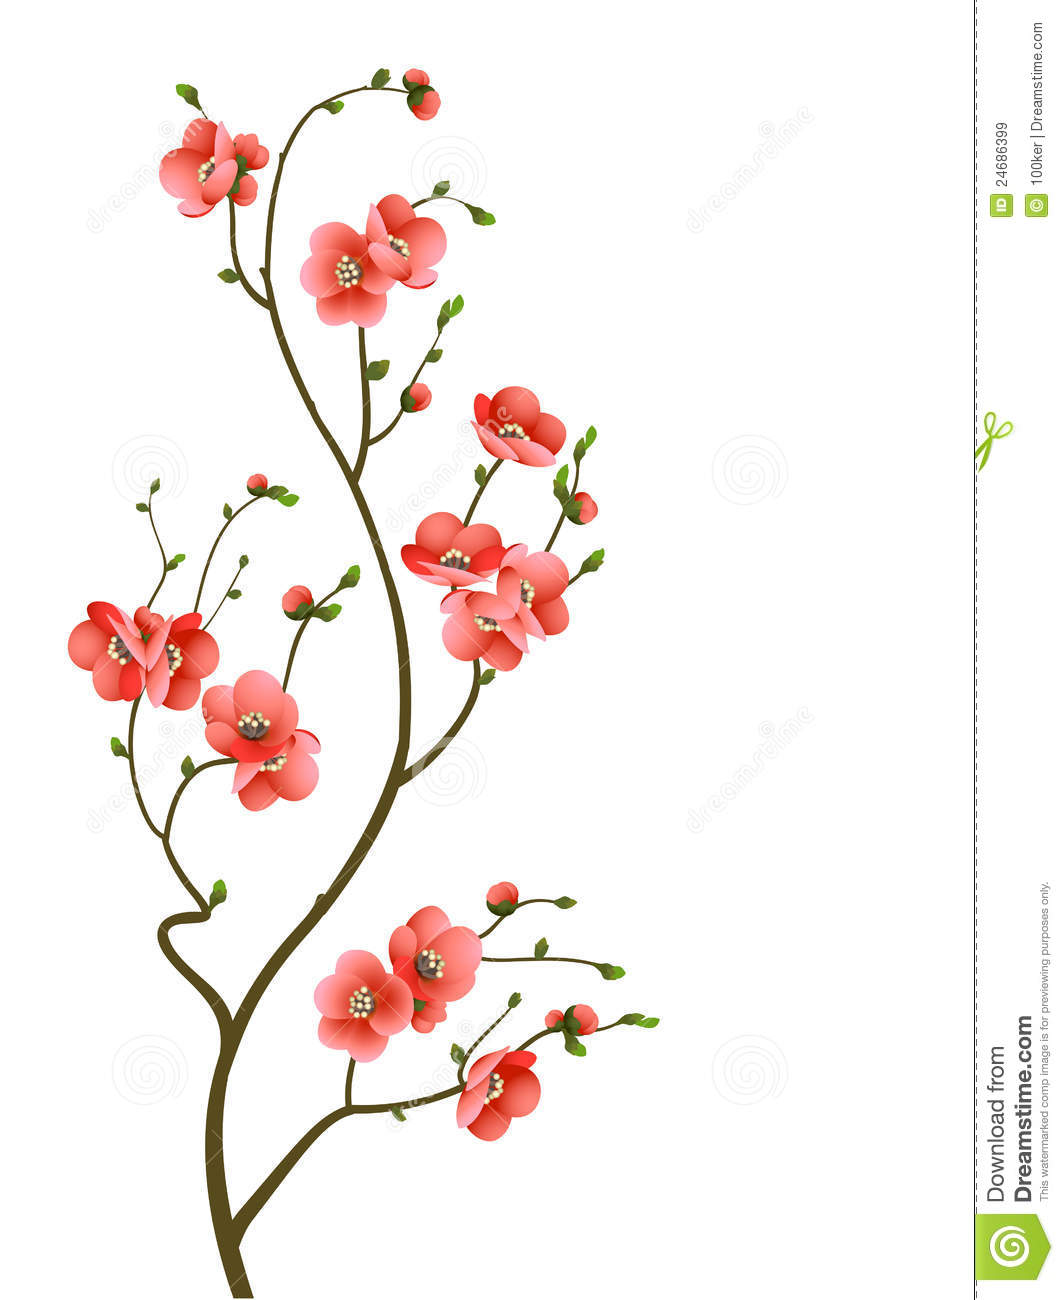 ... Branch Abstract Background Royalty Free Stock Images - Image: 24686399